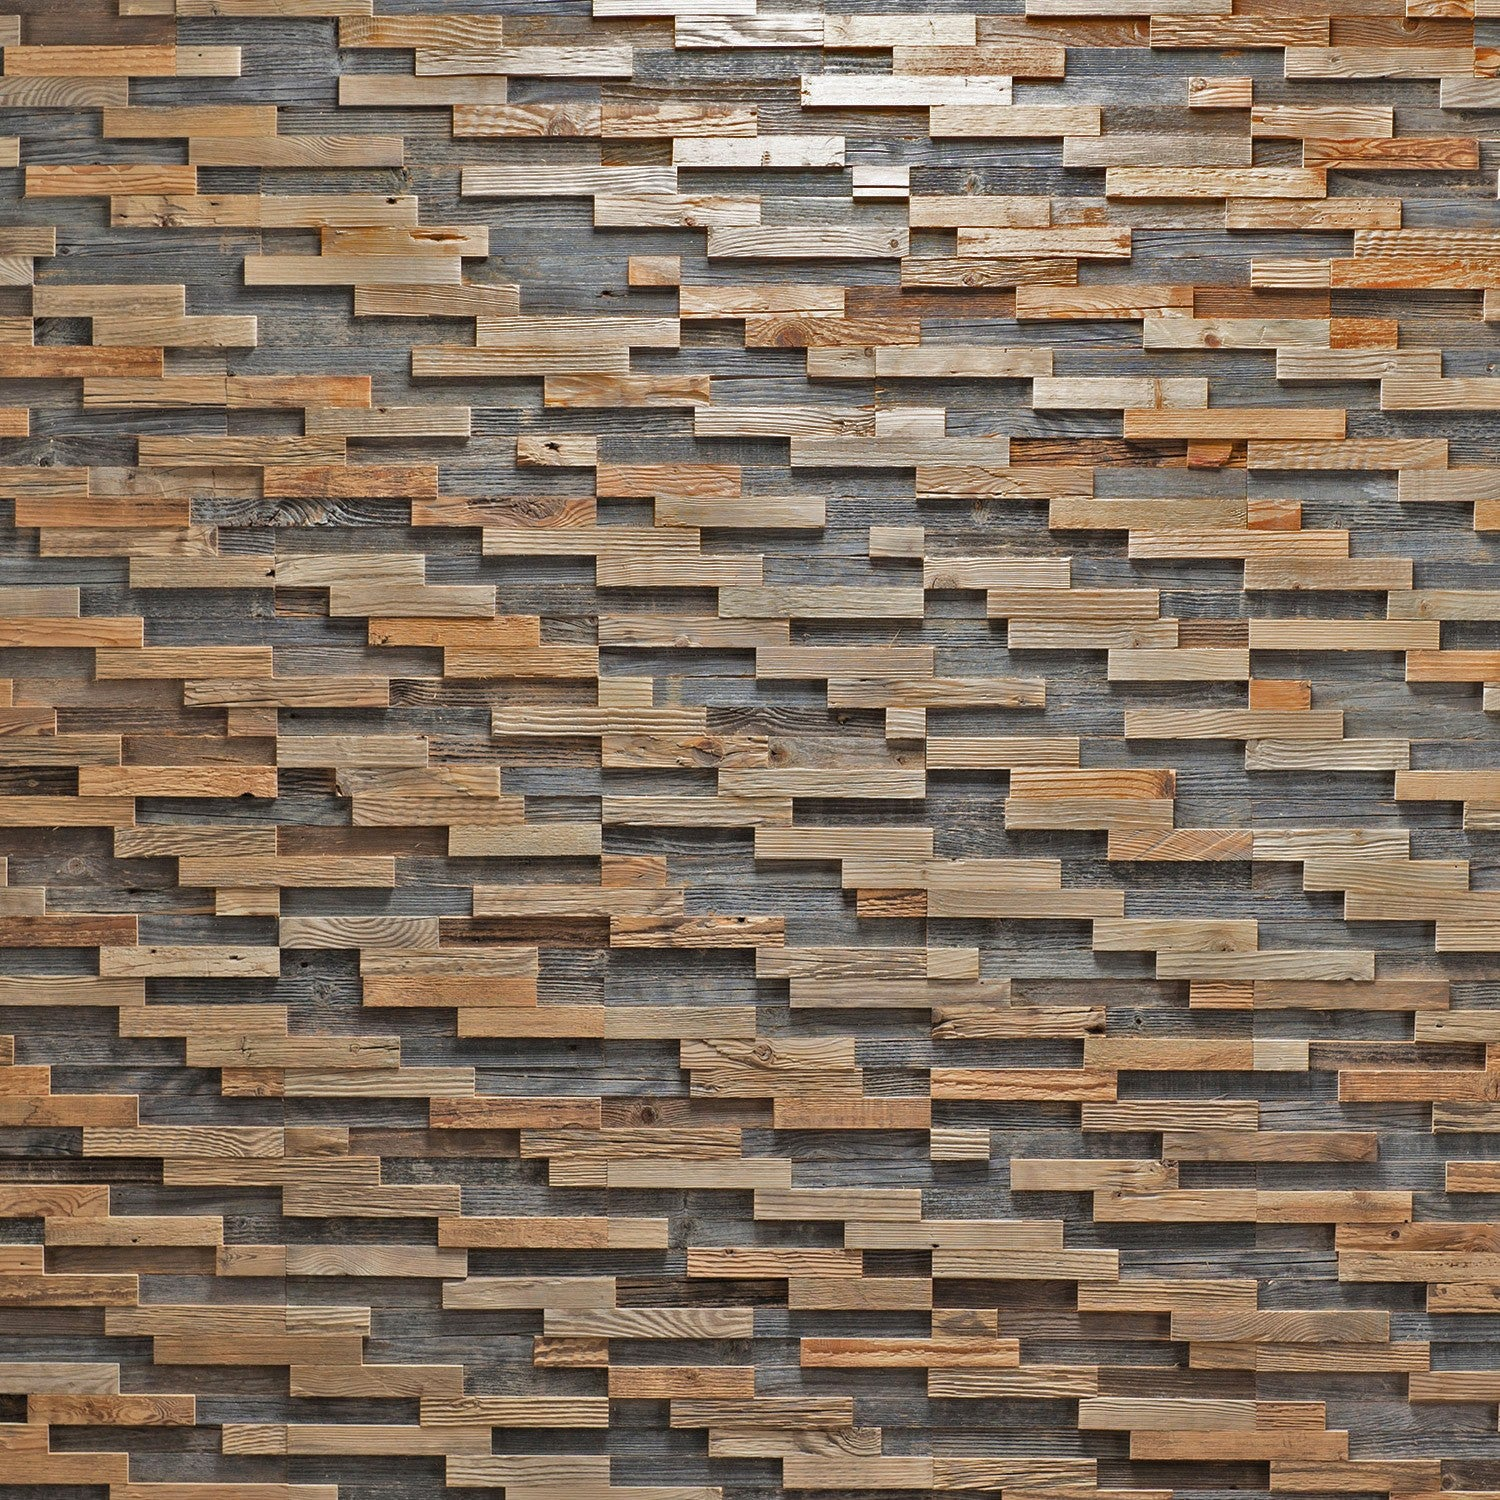 3d wood wall panels decorative plywood wall stader 3d wooden wall plain panel panels wood reclaimed